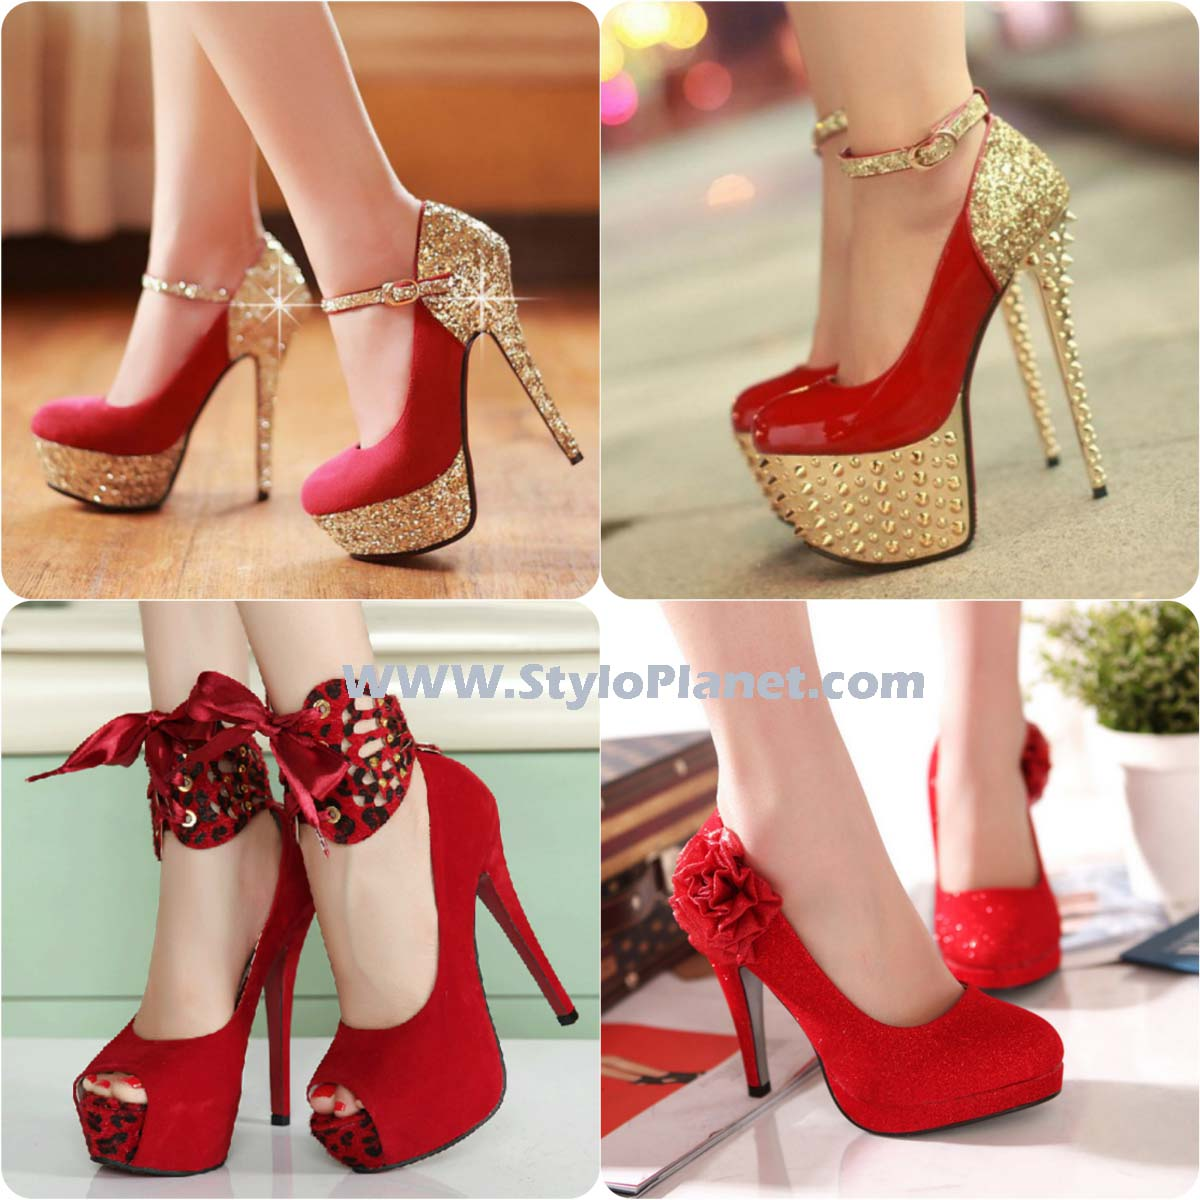 71a66cf2856d Latest Wedding Red Bridal Shoes Collection- Bridal Wedding Footwear  2017-2018